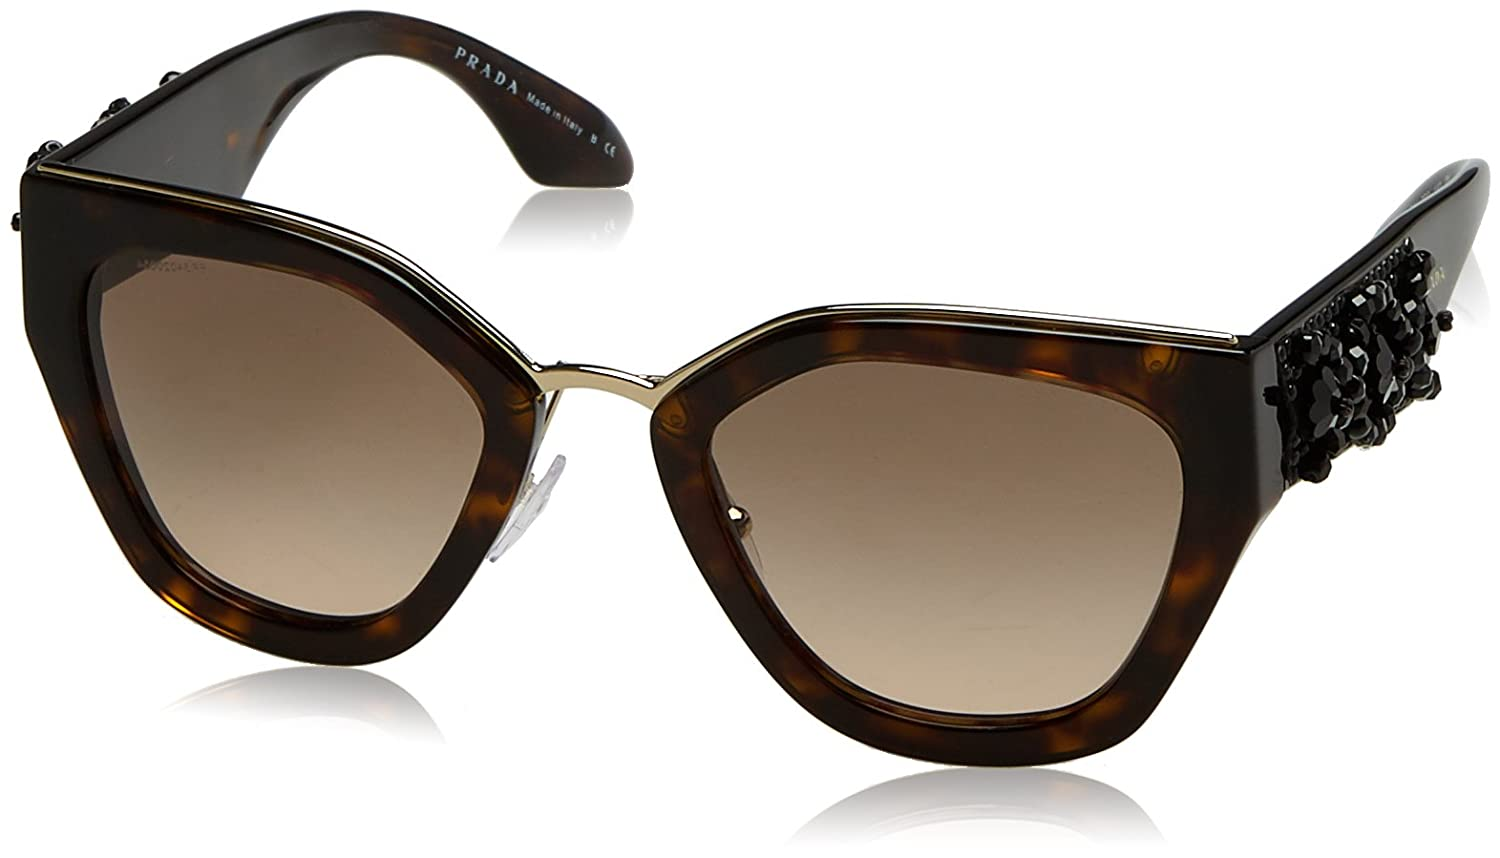 07dfe1c92ec Prada Women s PR 10TS Sunglasses Havana   Brown Gradient 52mm at Amazon  Men s Clothing store